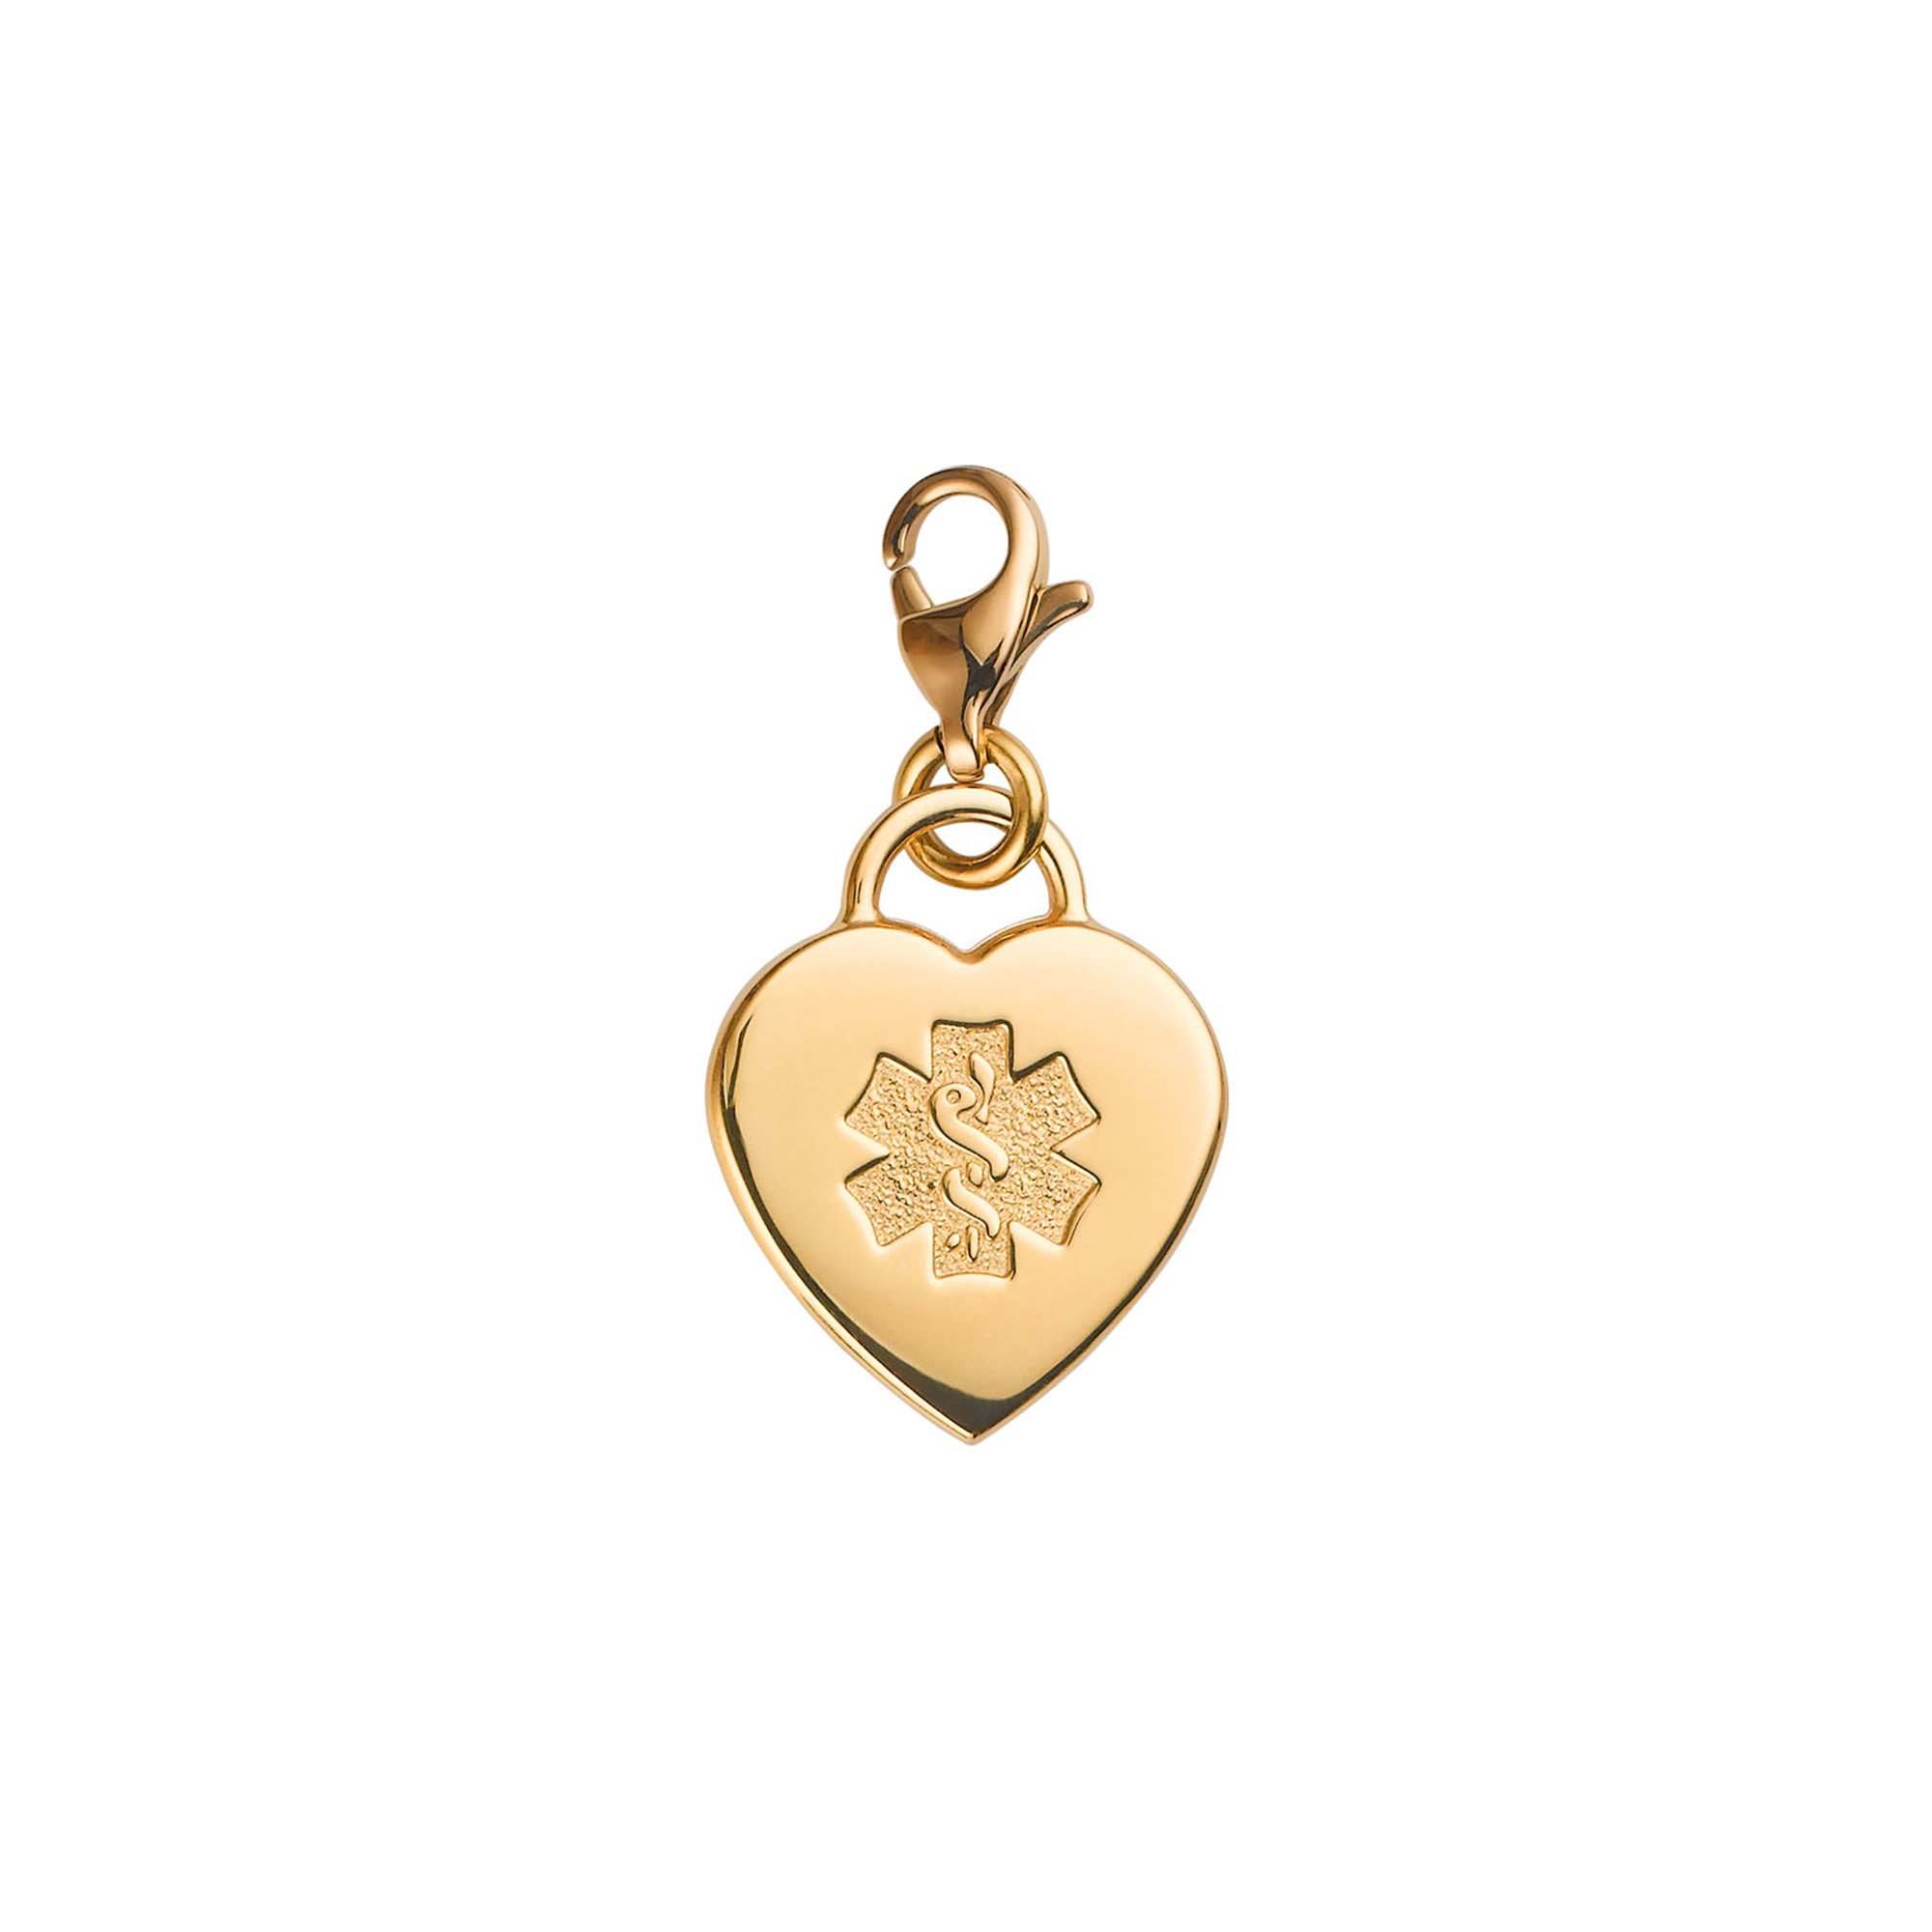 Divoti Custom Engraved Adorable Heart PVD 316L Medical Alert Charm w/ Lobster Clasp - Gold